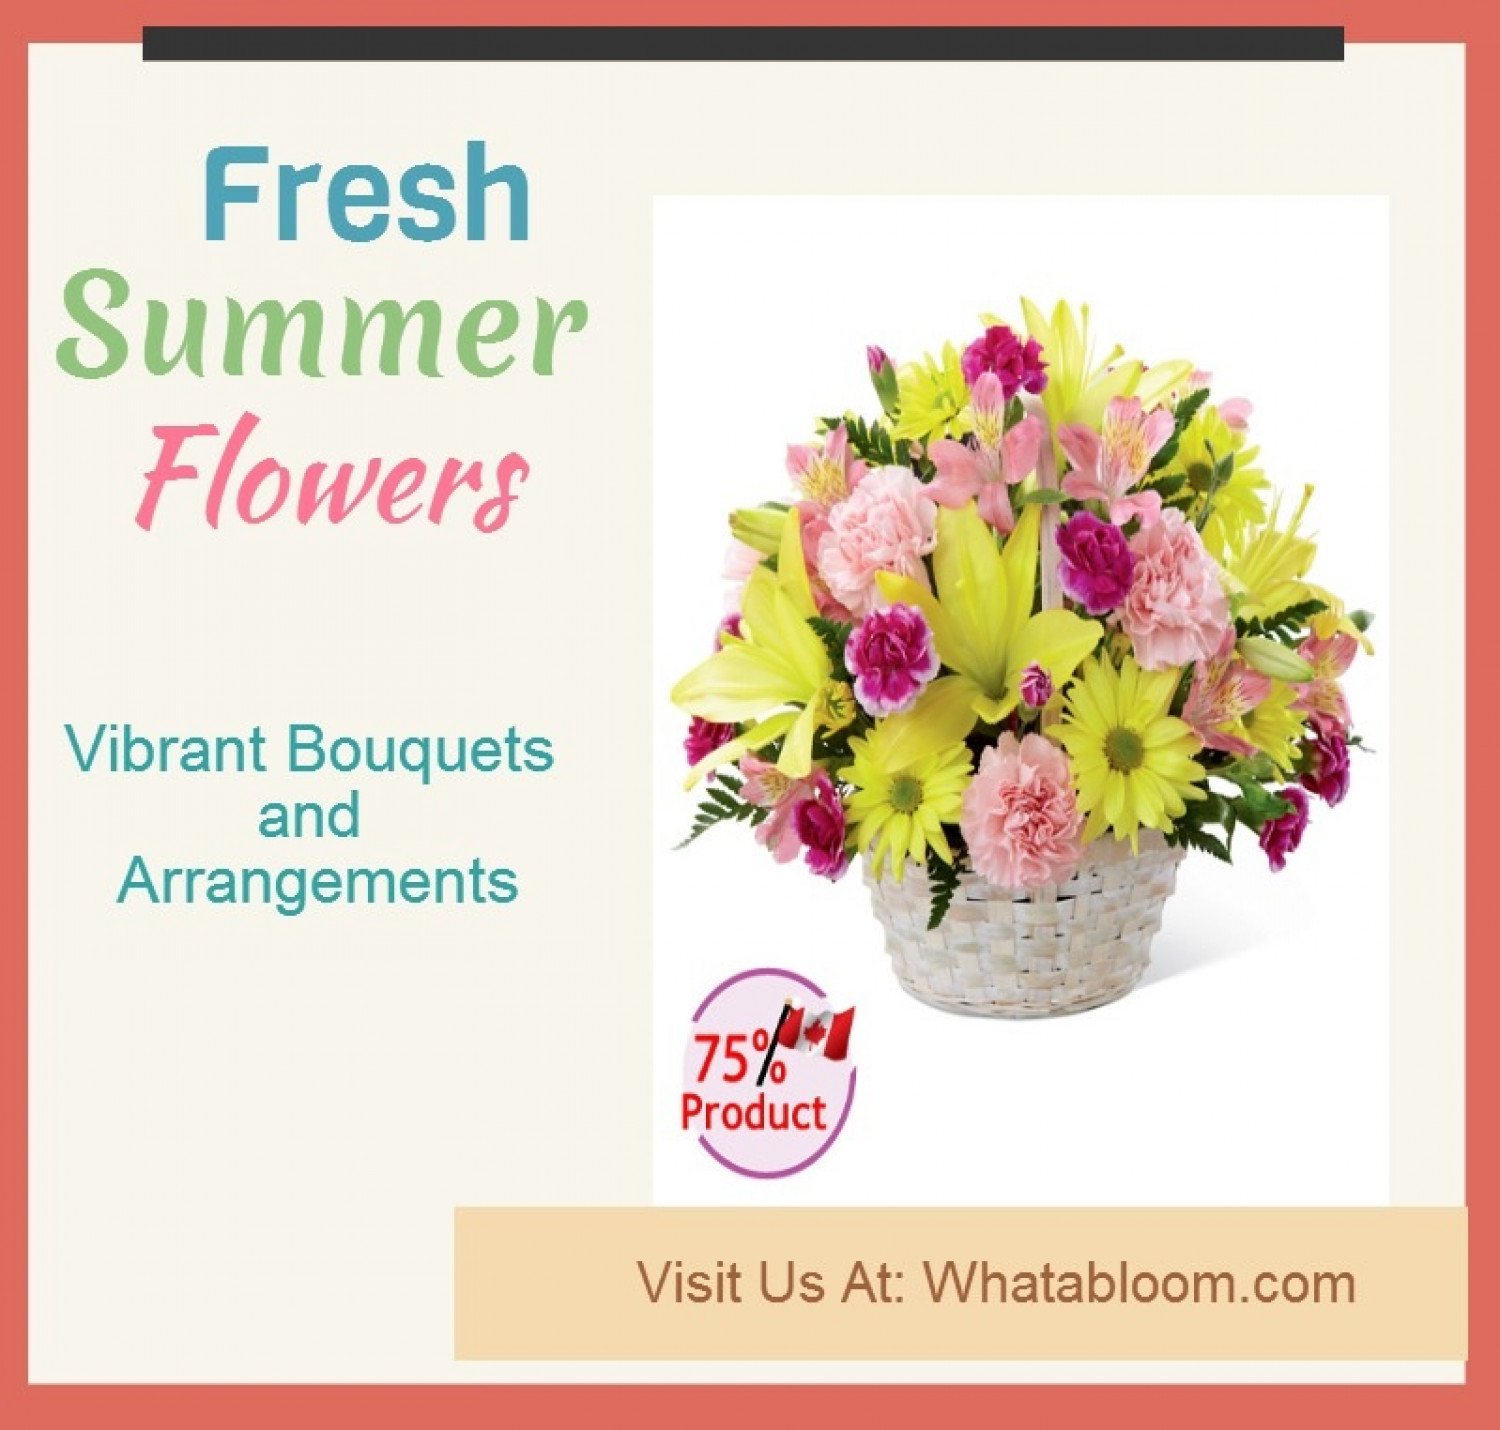 Fresh Summer Flowers -Vibrant Bouquets and Arrangements Infographic